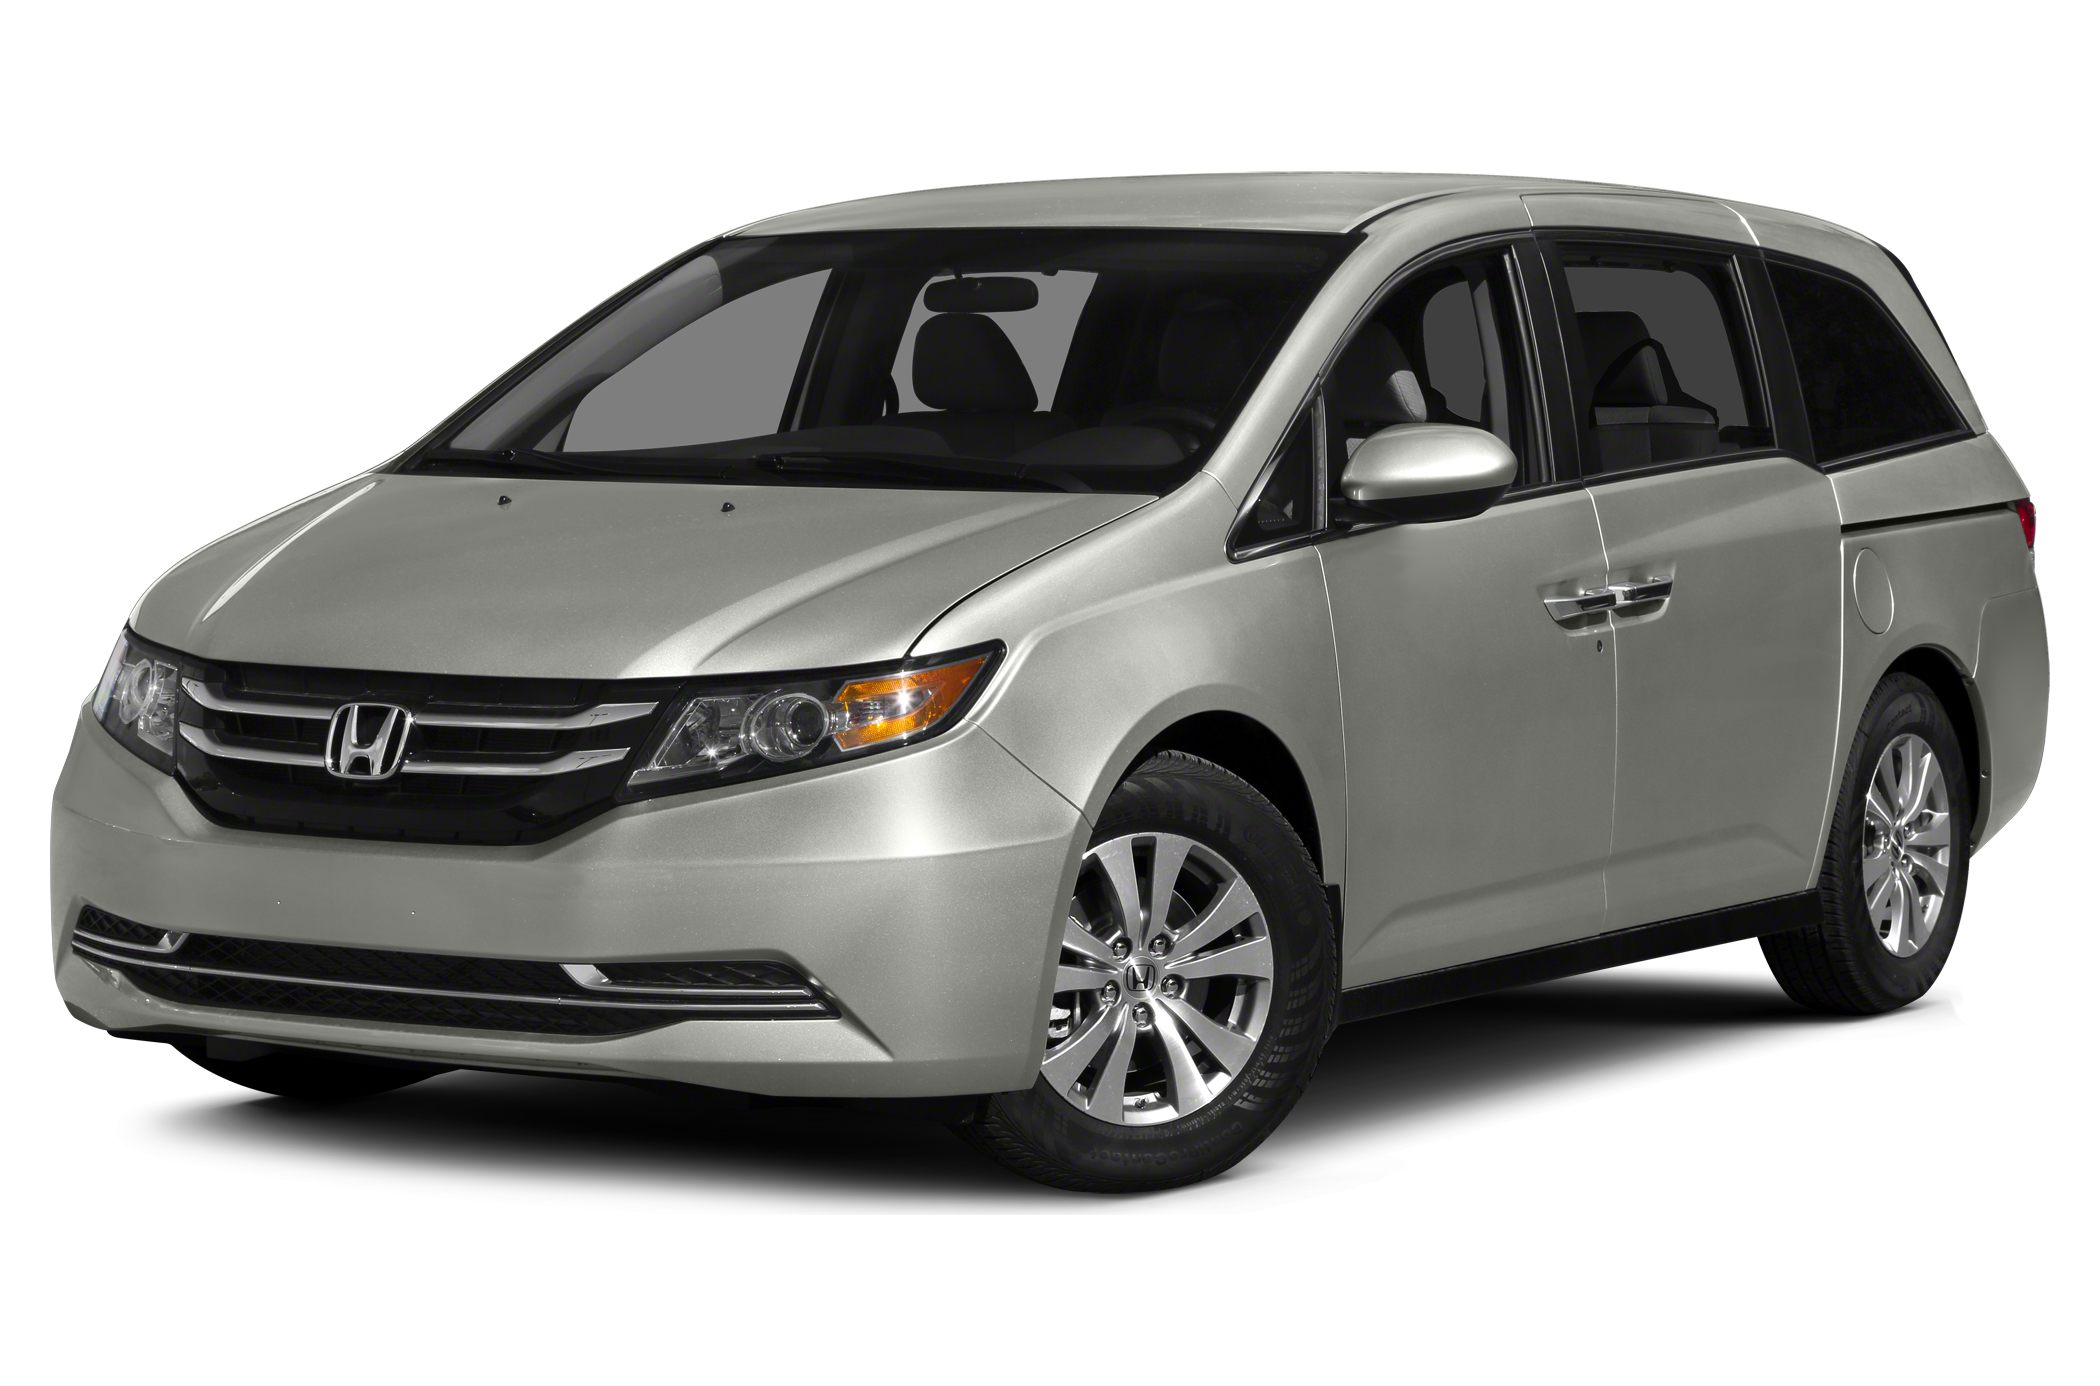 2015 Honda Odyssey EX Minivan for sale in Forest City for $30,509 with 2 miles